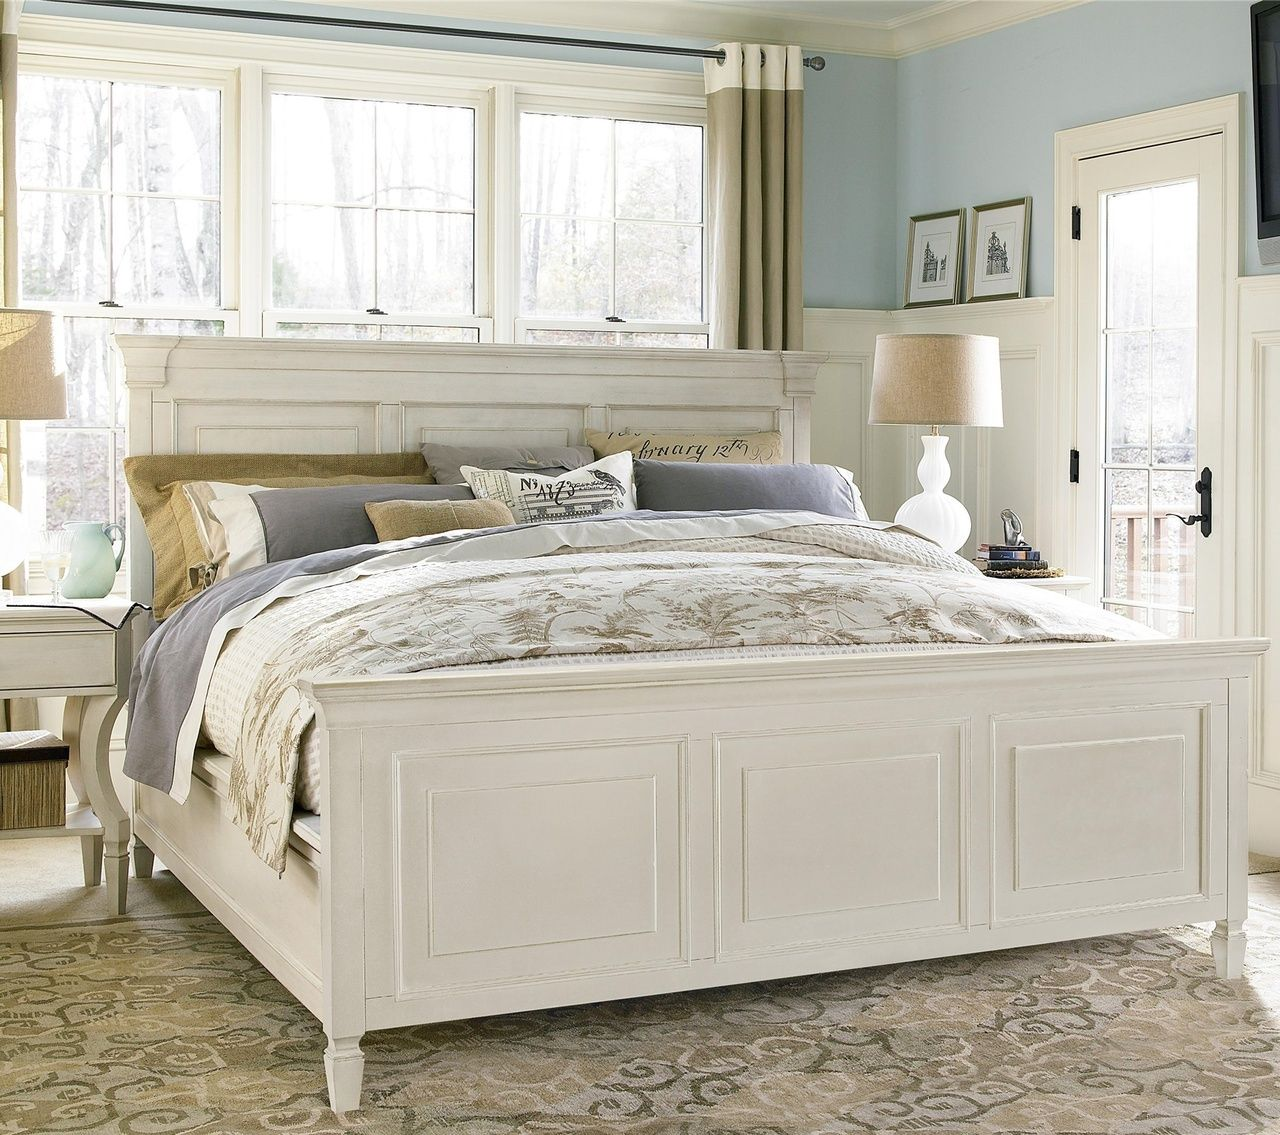 Country Chic White King Panel Bed Frame In 2020 Coastal Bedroom